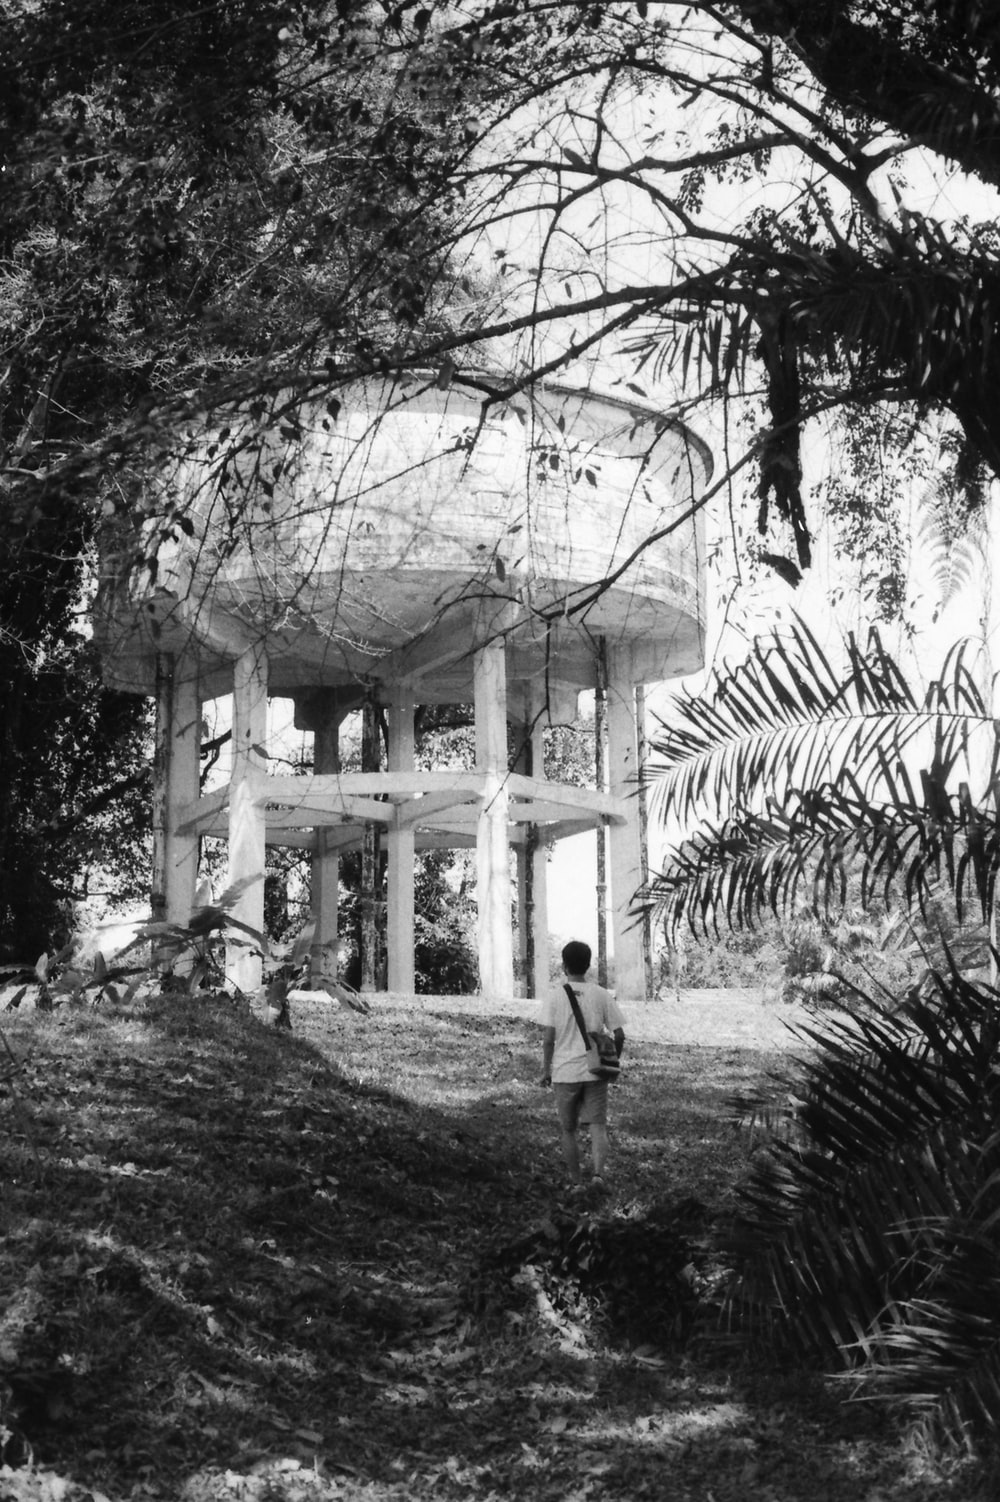 grayscale photo of man in black jacket and pants standing near building